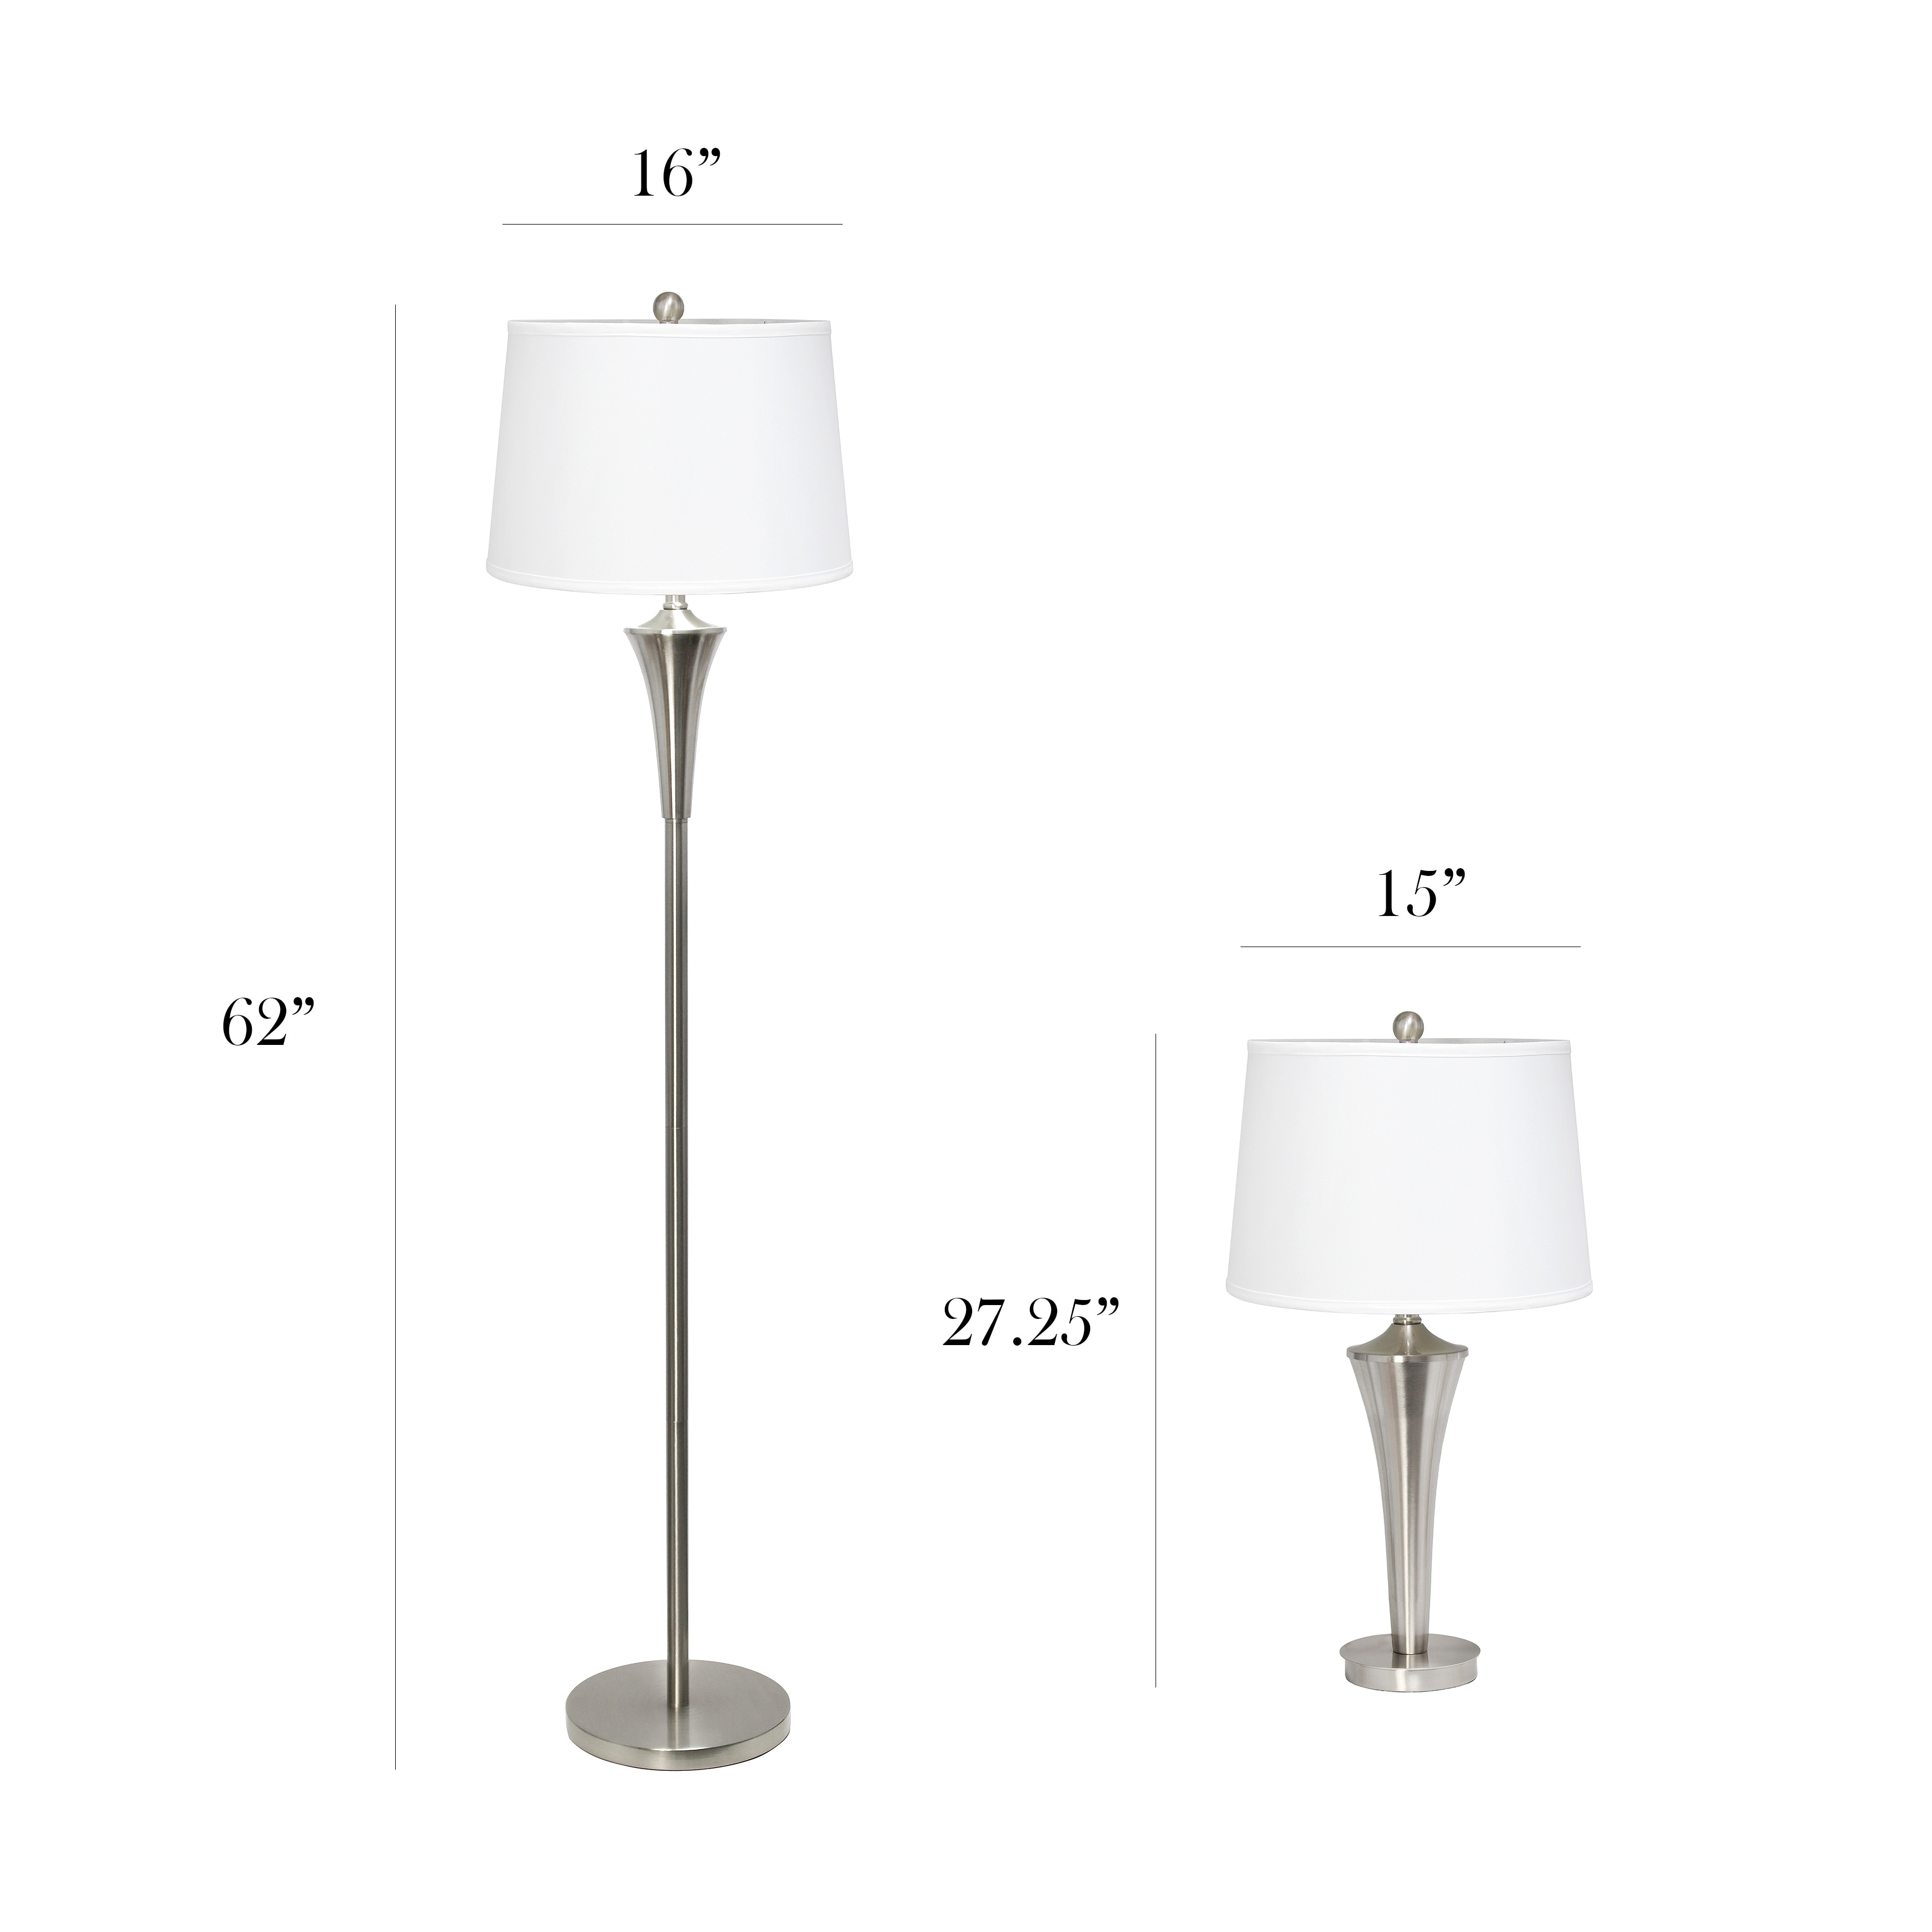 Lamp Set 2 Table Lamps 1 Floor